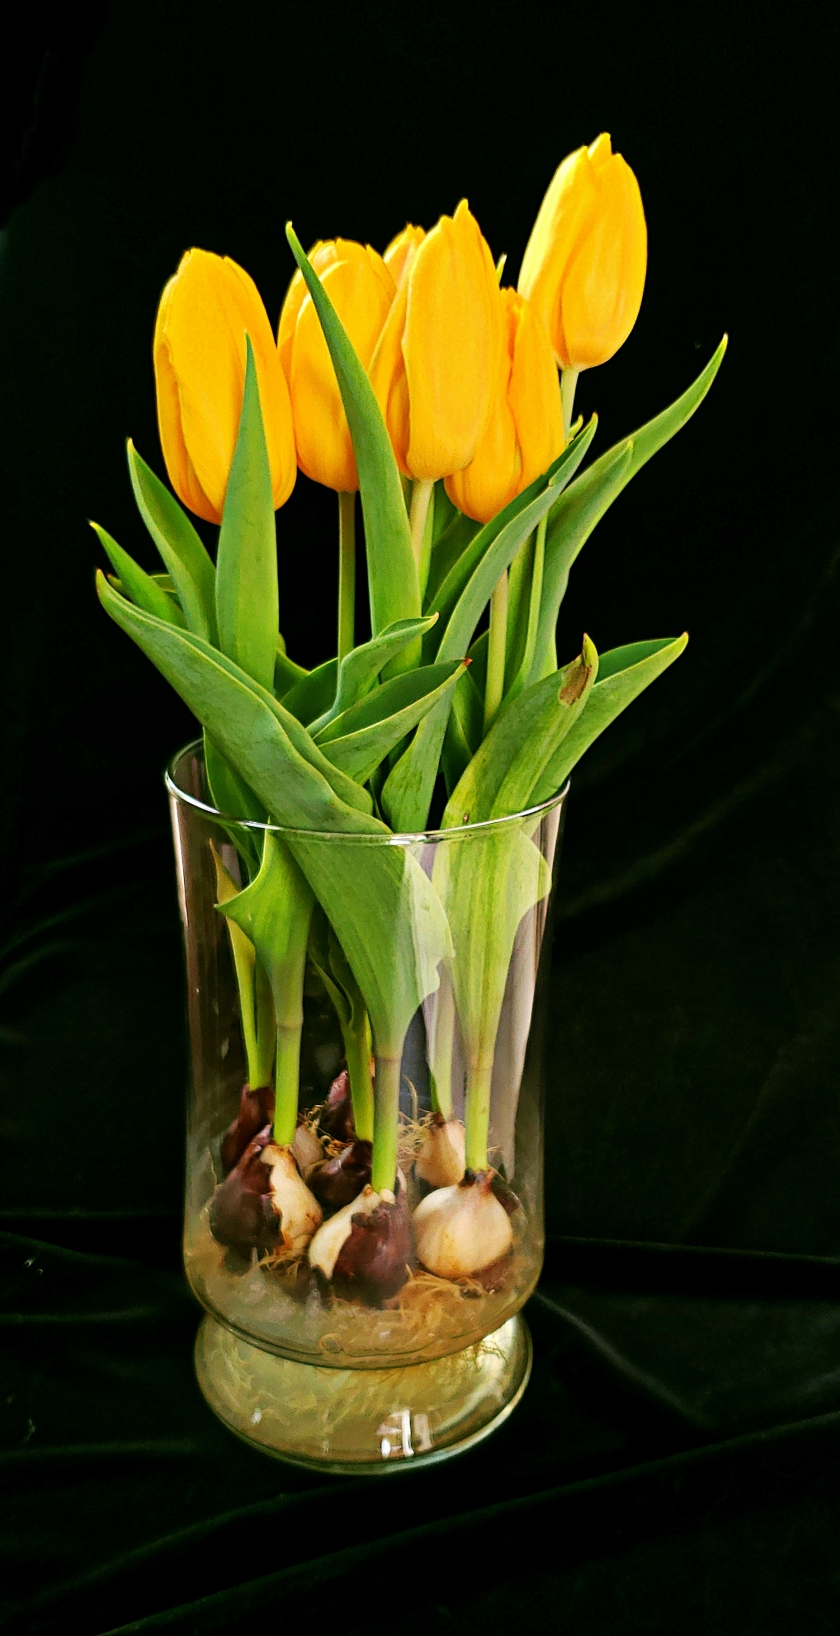 00-yellowtulips-20180511_162522_42002357172A